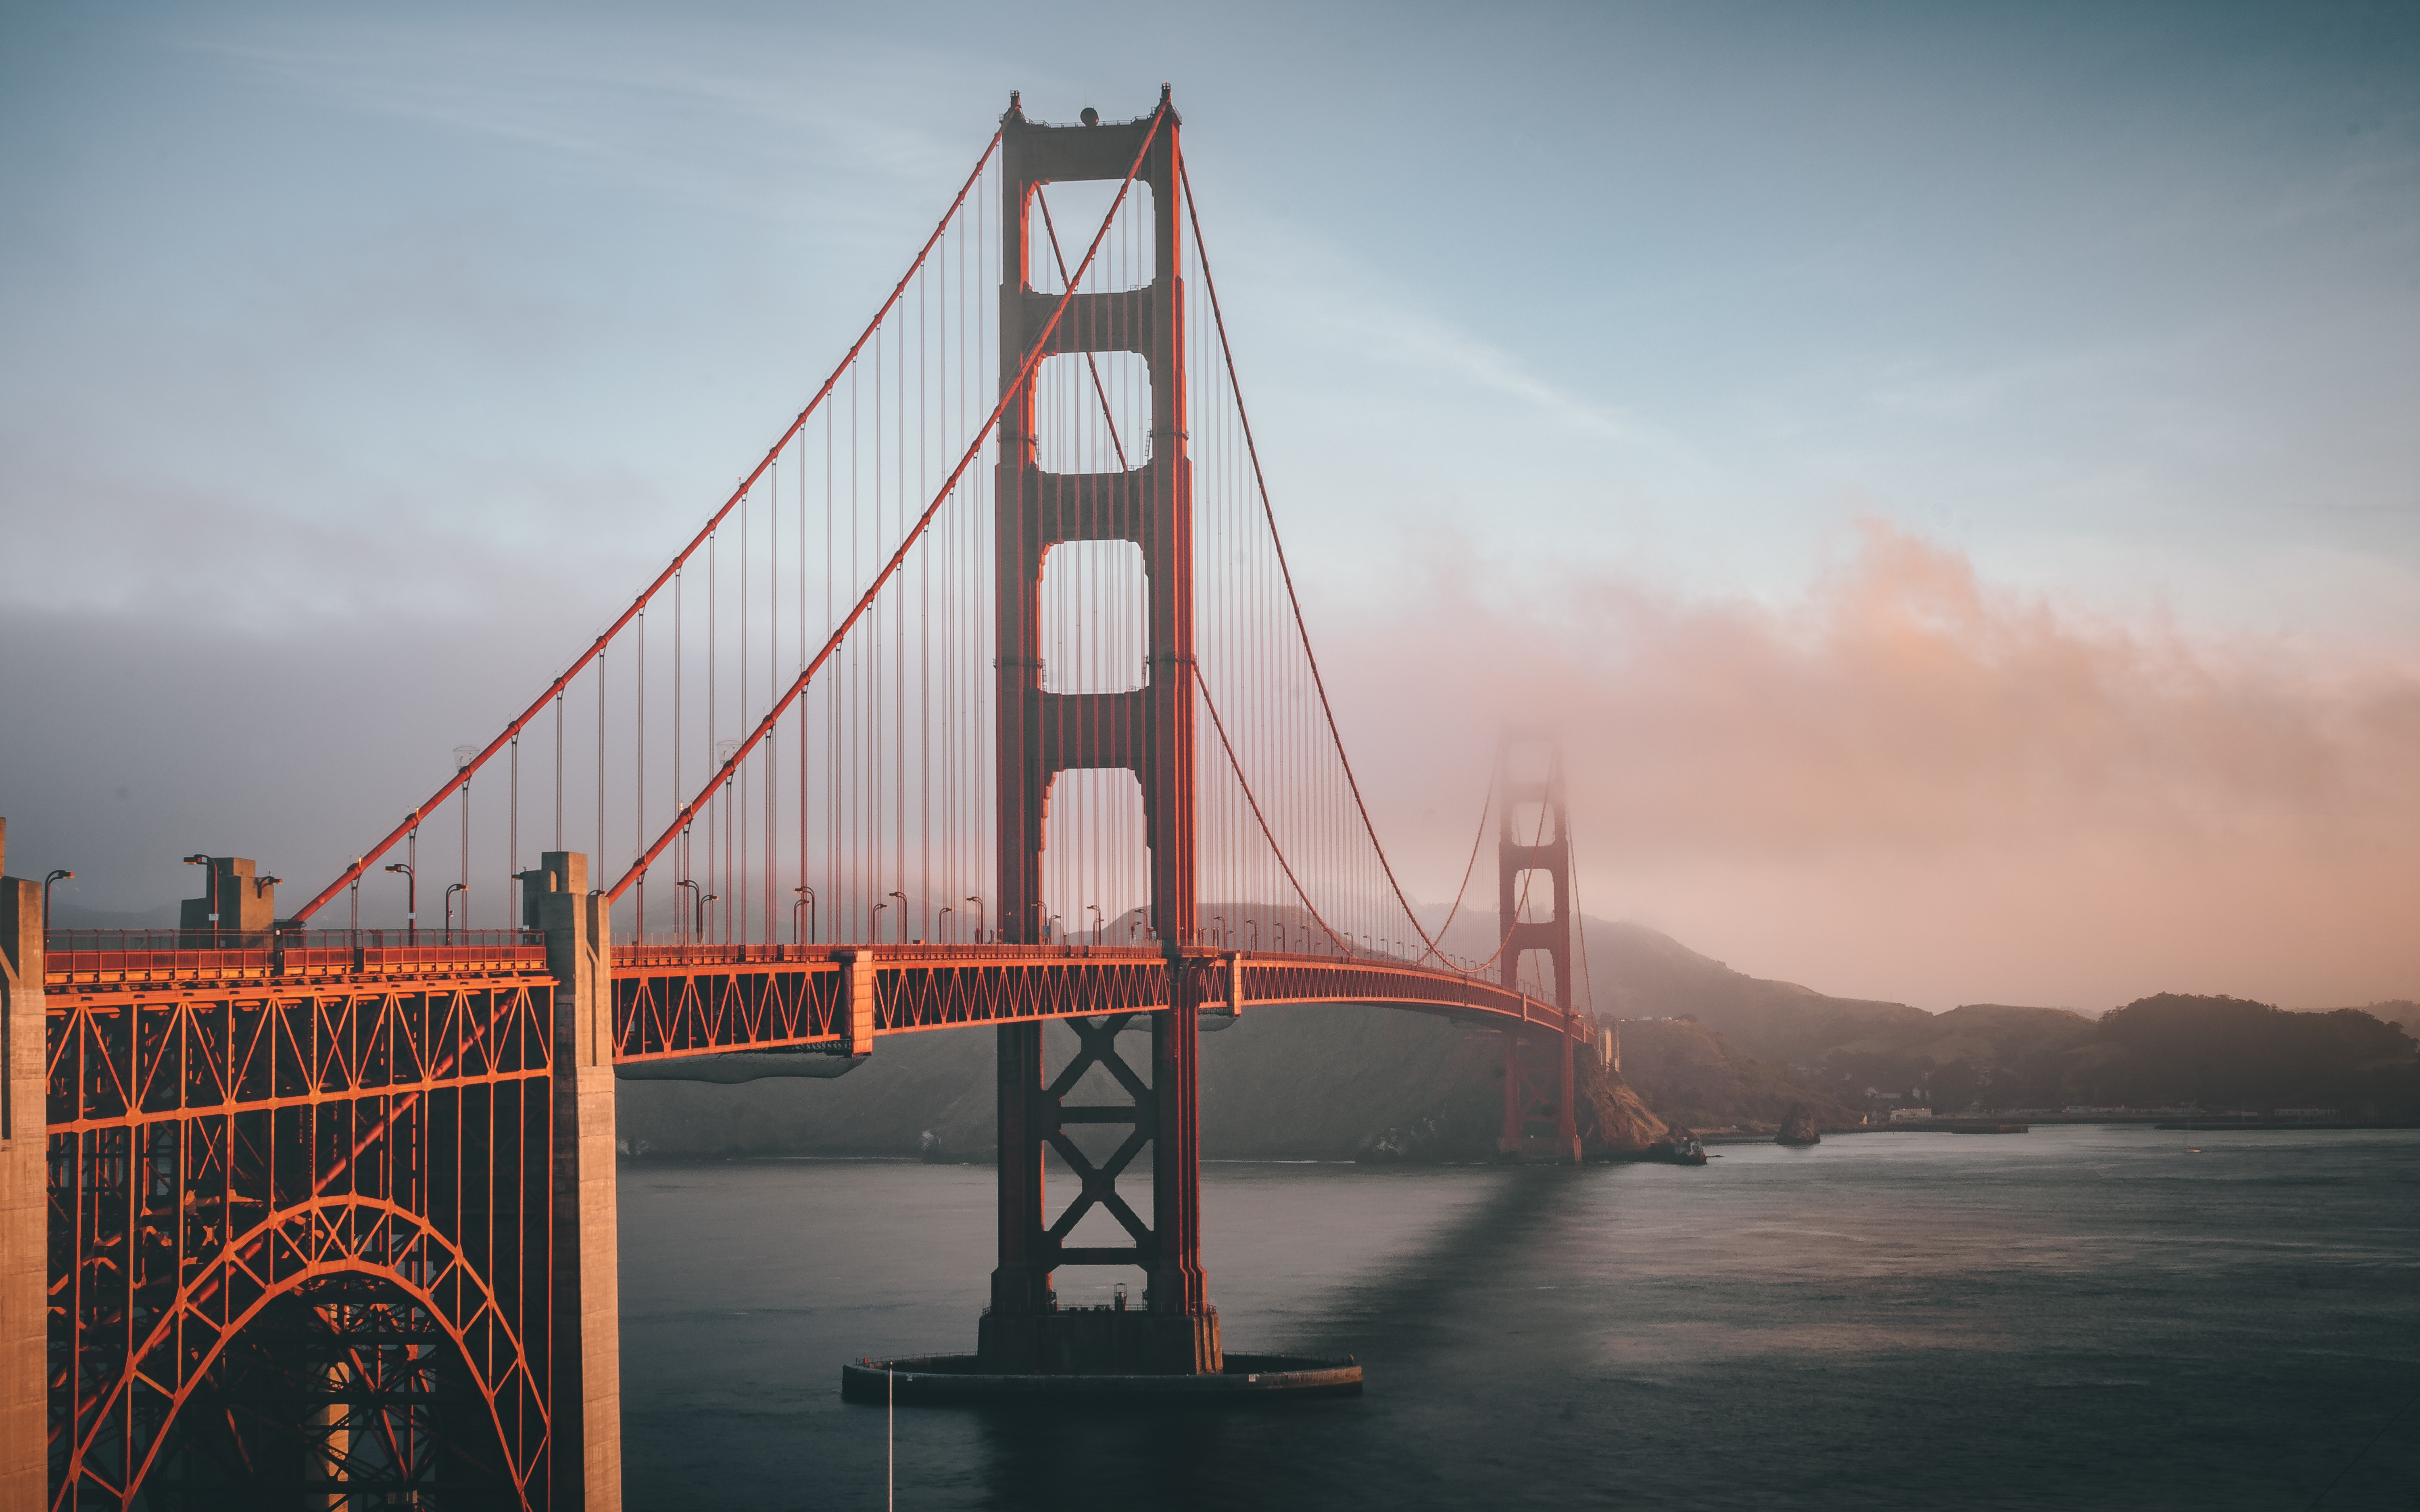 Golden Gate Bridge 4k: Golden Gate Bridge 5k, HD World, 4k Wallpapers, Images